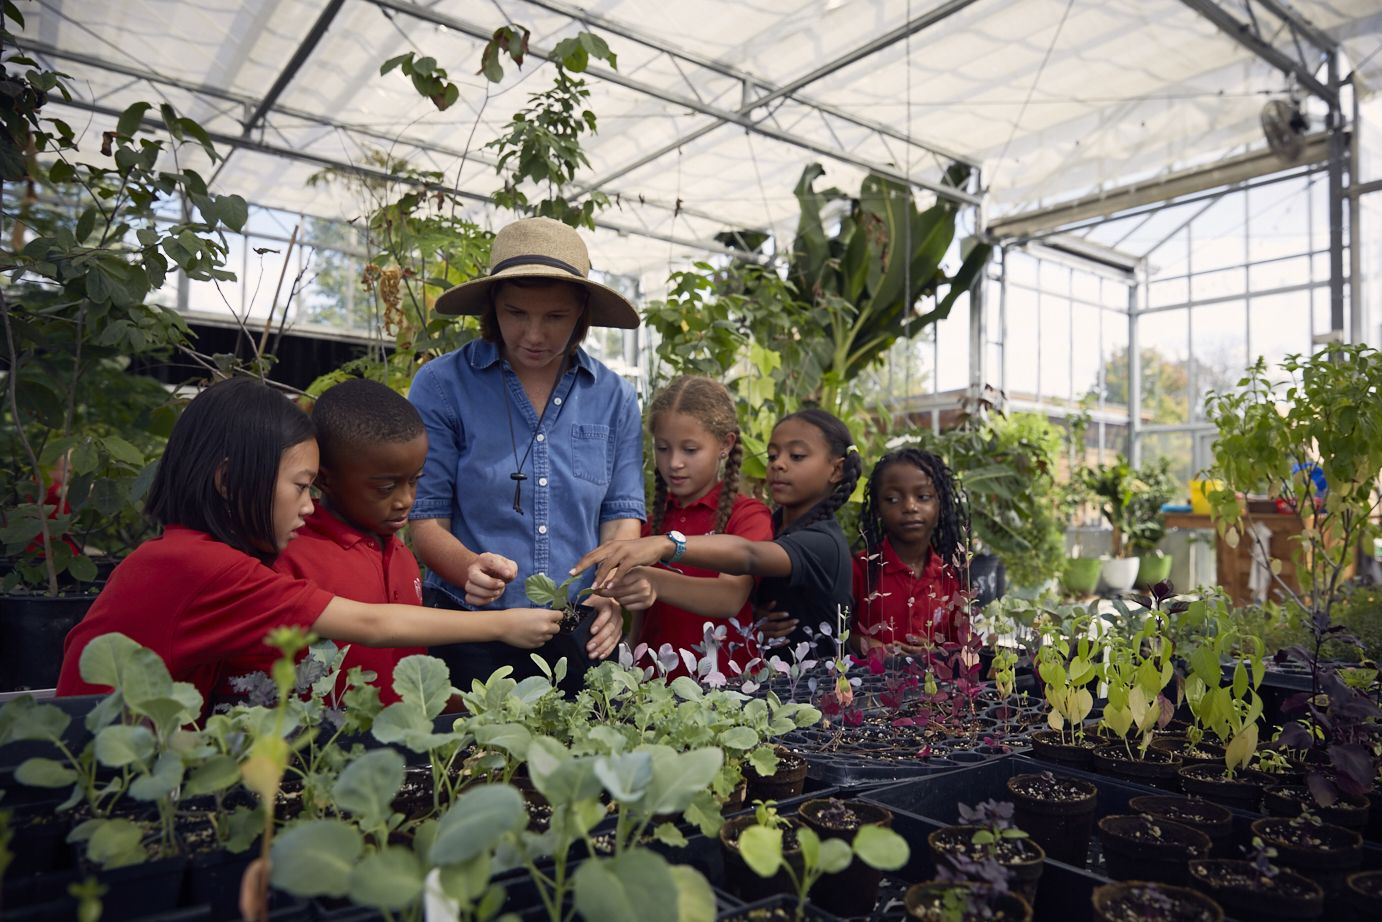 Students manage the watering, planting, and overall care of the plants in the greenhouse. Learning about germination, plant genes, and optimal environmental factors for the seedlings to thrive.